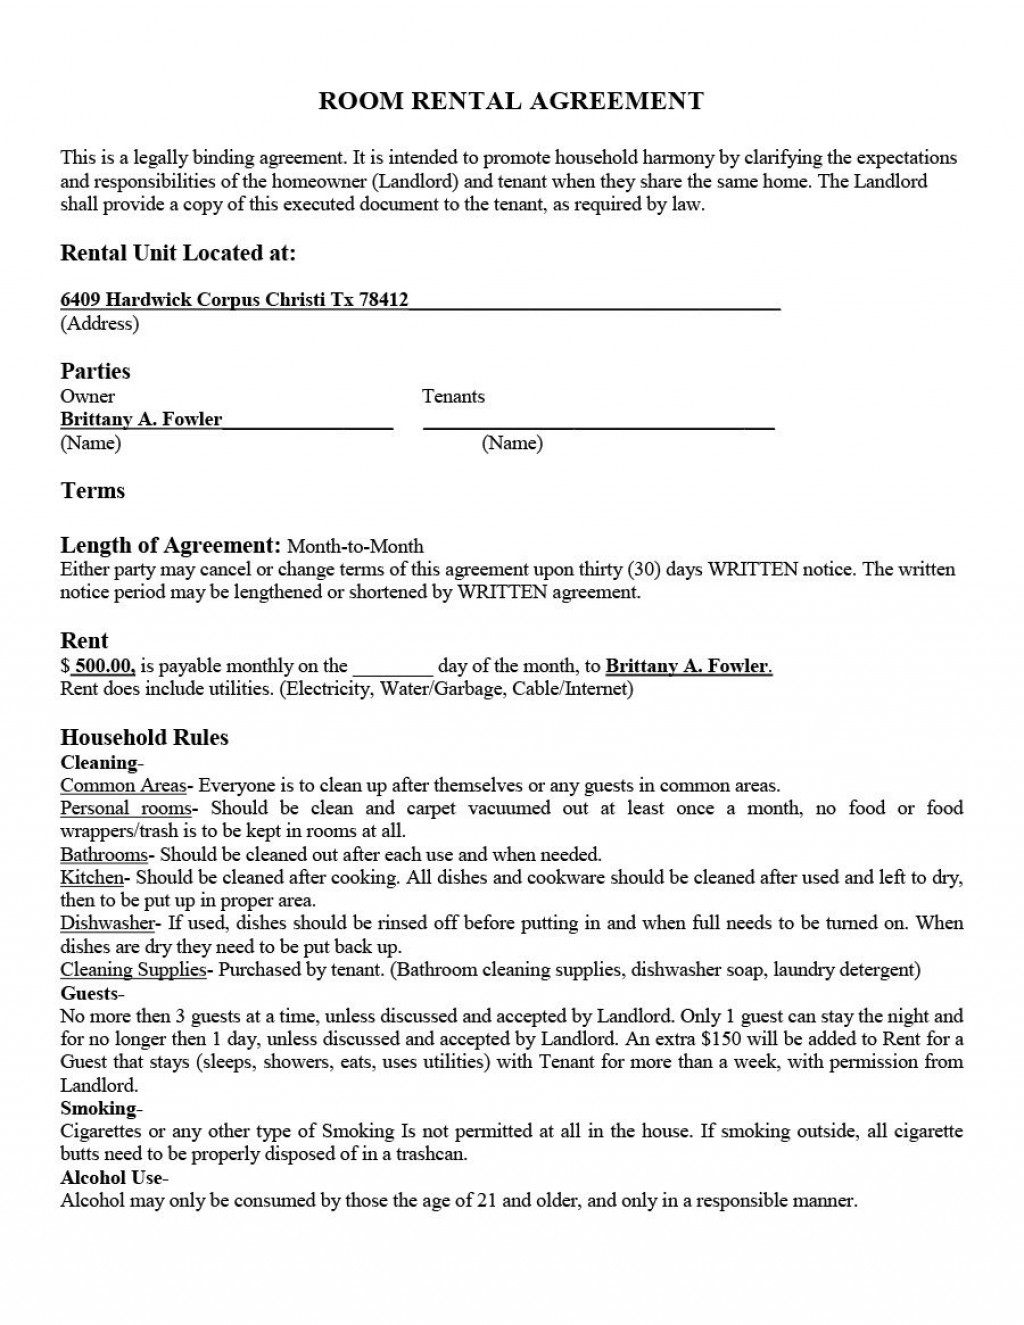 007 Stirring Sample House Rental Agreement Template Image  Contract LeaseLarge